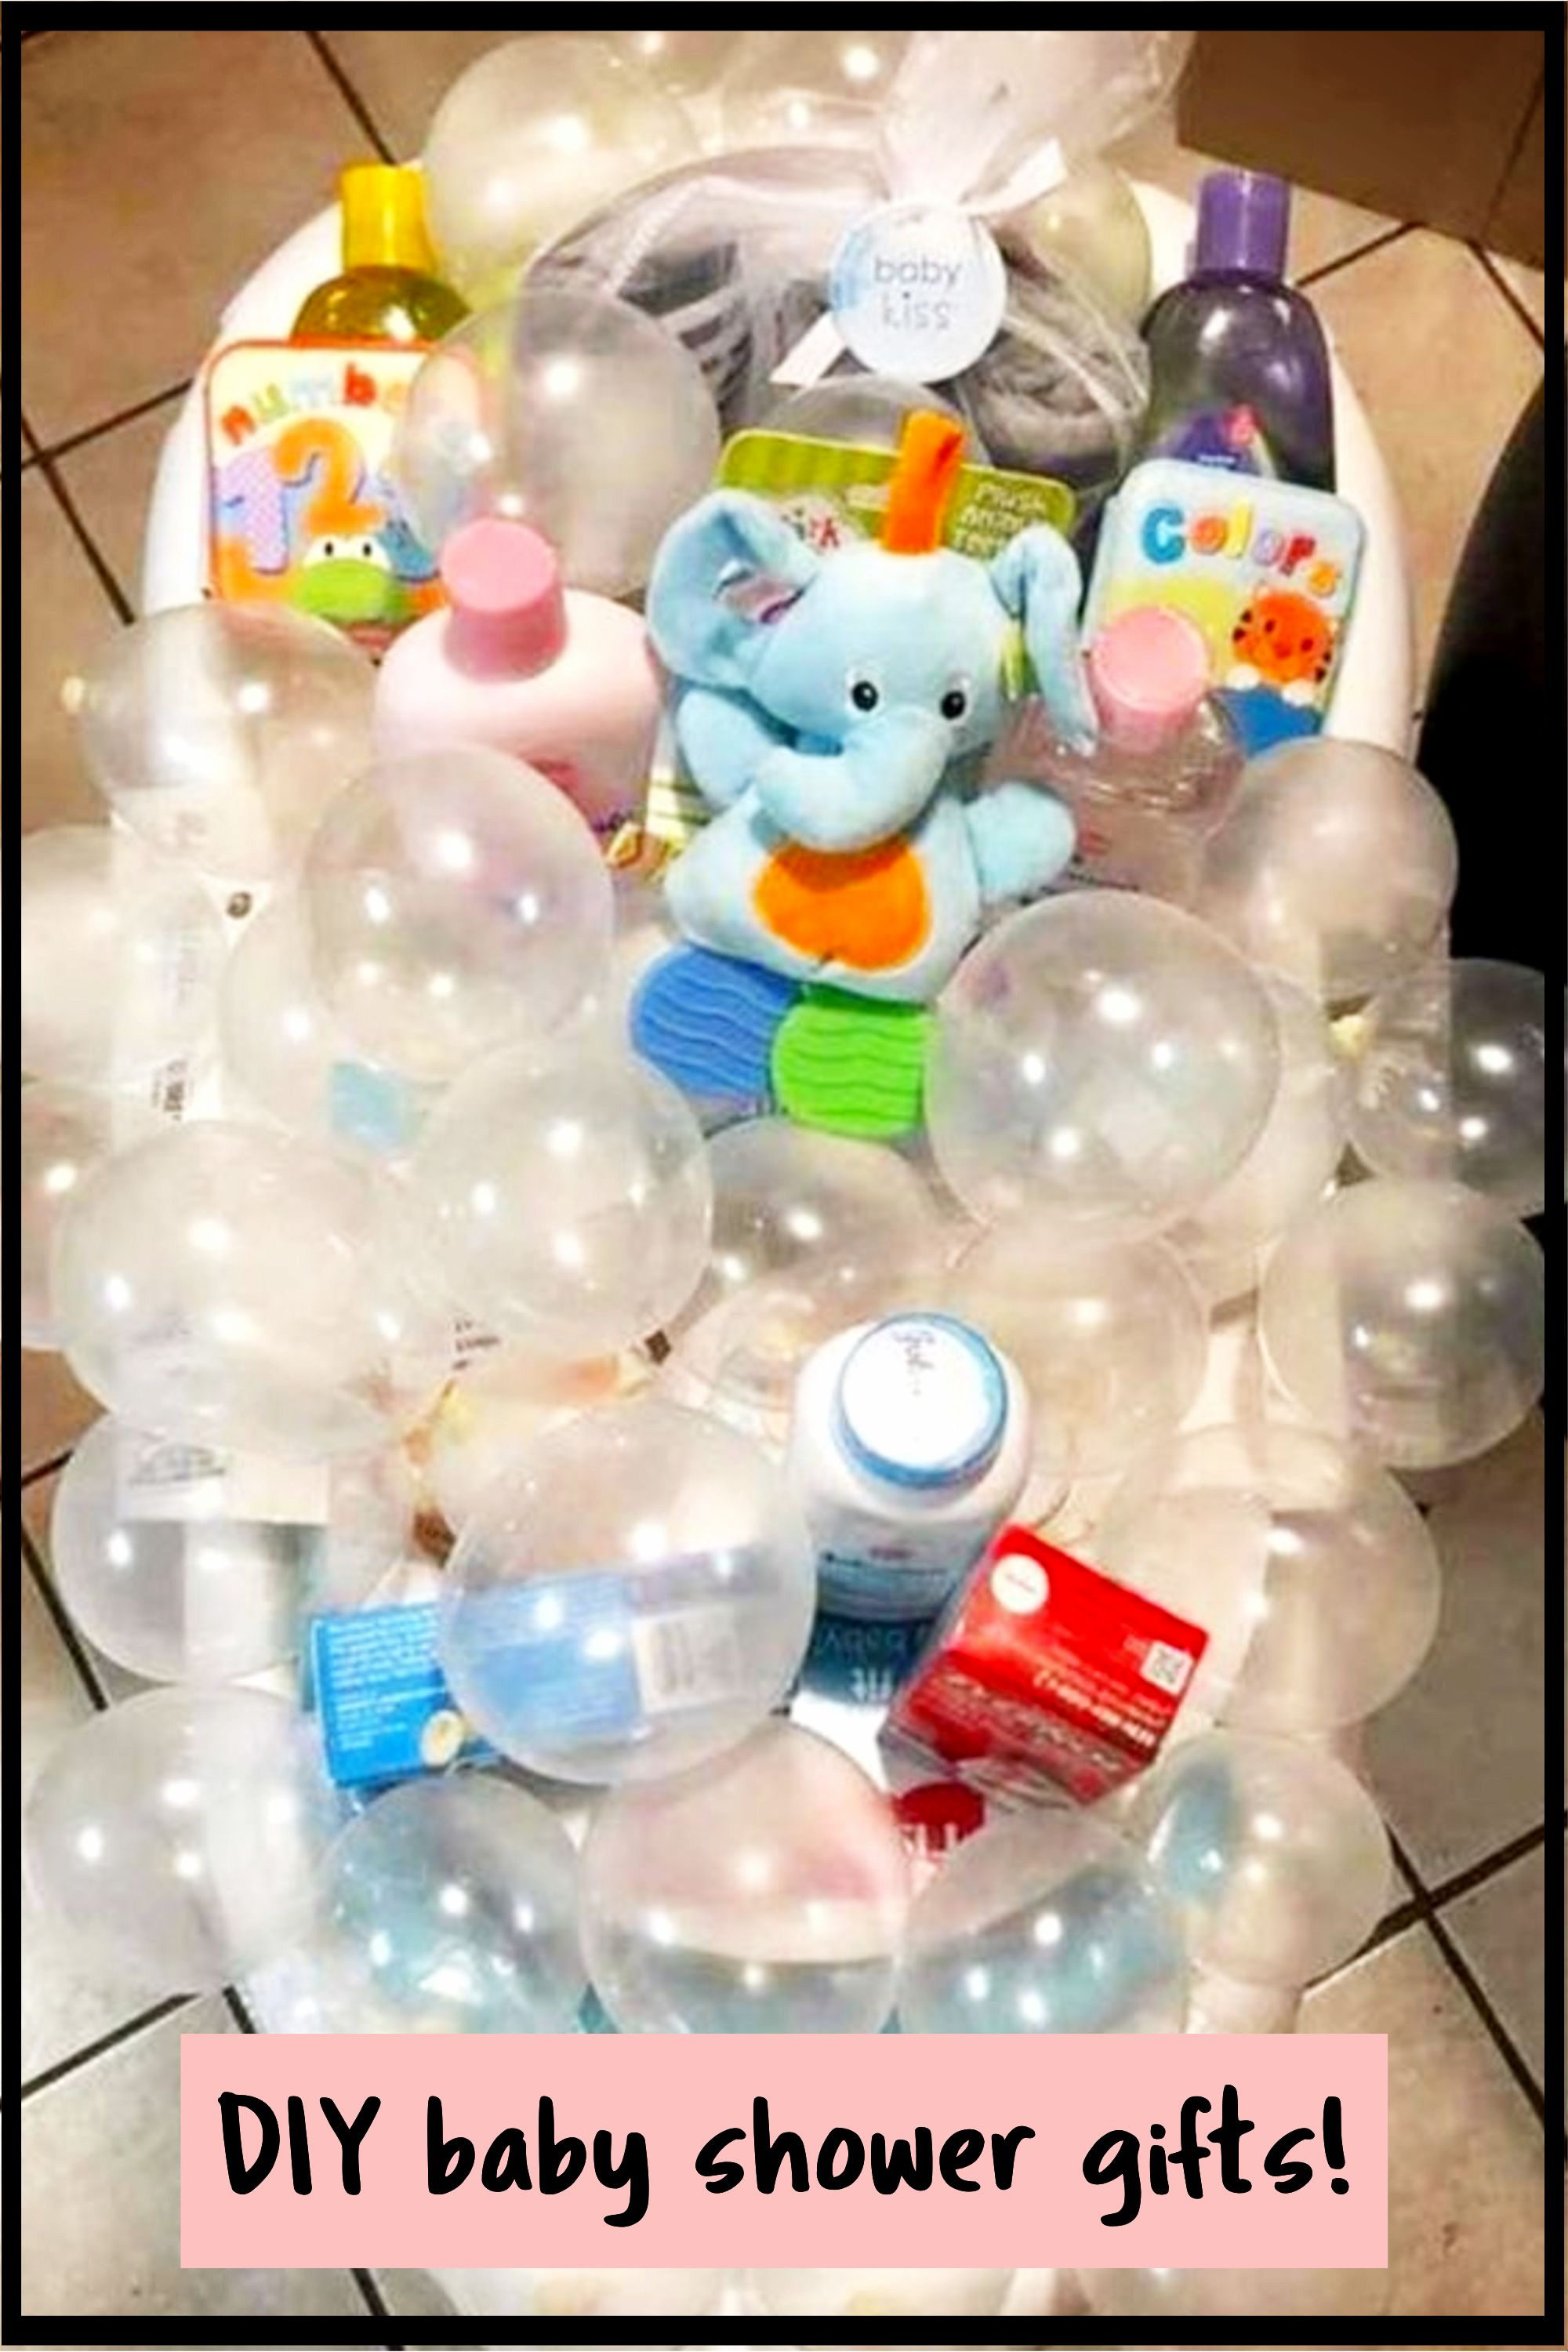 28 Affordable Cheap Baby Shower Gift Ideas For Those On A Budget 2020 Guide Diy Baby Shower Gifts Baby Shower Gifts For Boys Baby Shower Gift Basket